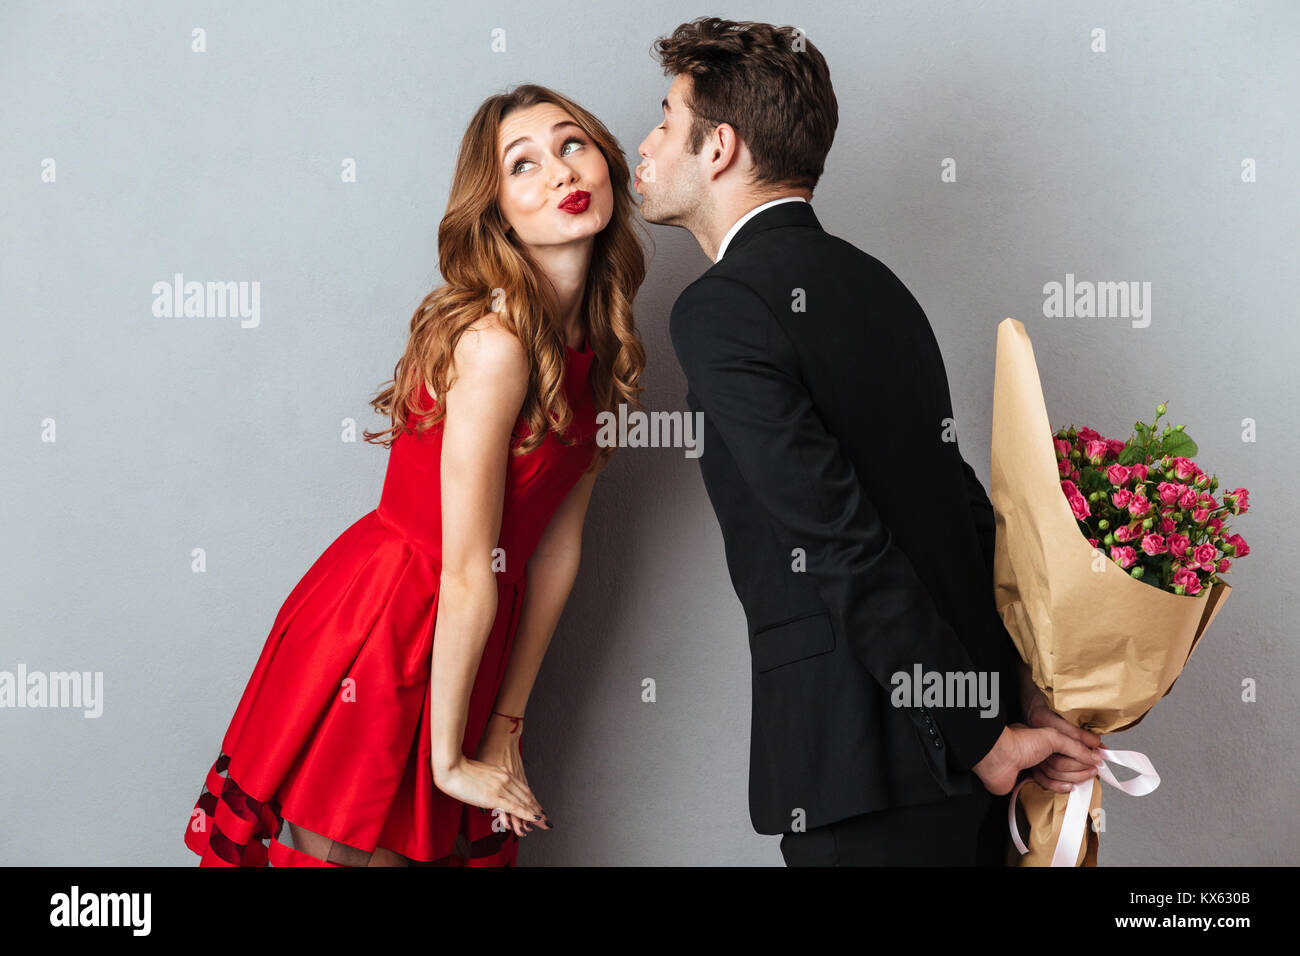 Portrait of a young lovely couple kissing while standing and holding flower bouquet over gray wall background - Stock Image